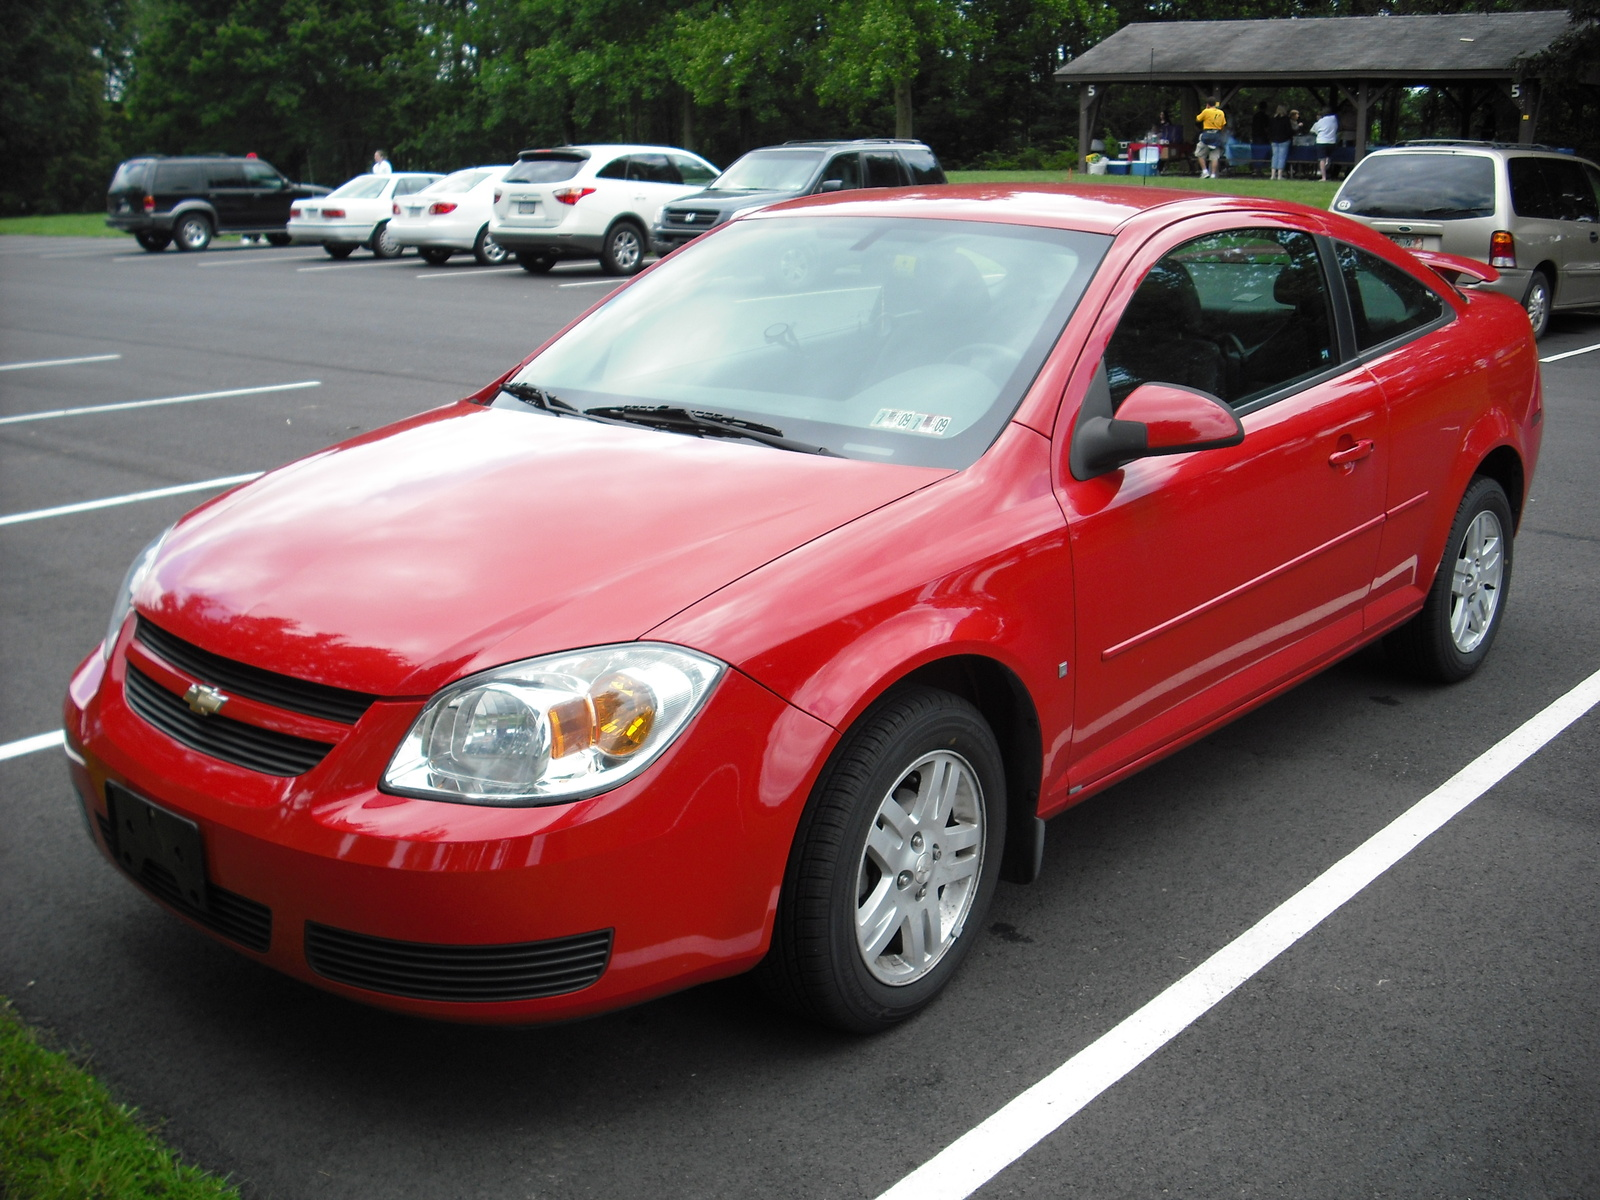 2006 Chevrolet Cobalt LT Coupe - Pictures - Picture of 2006 ...